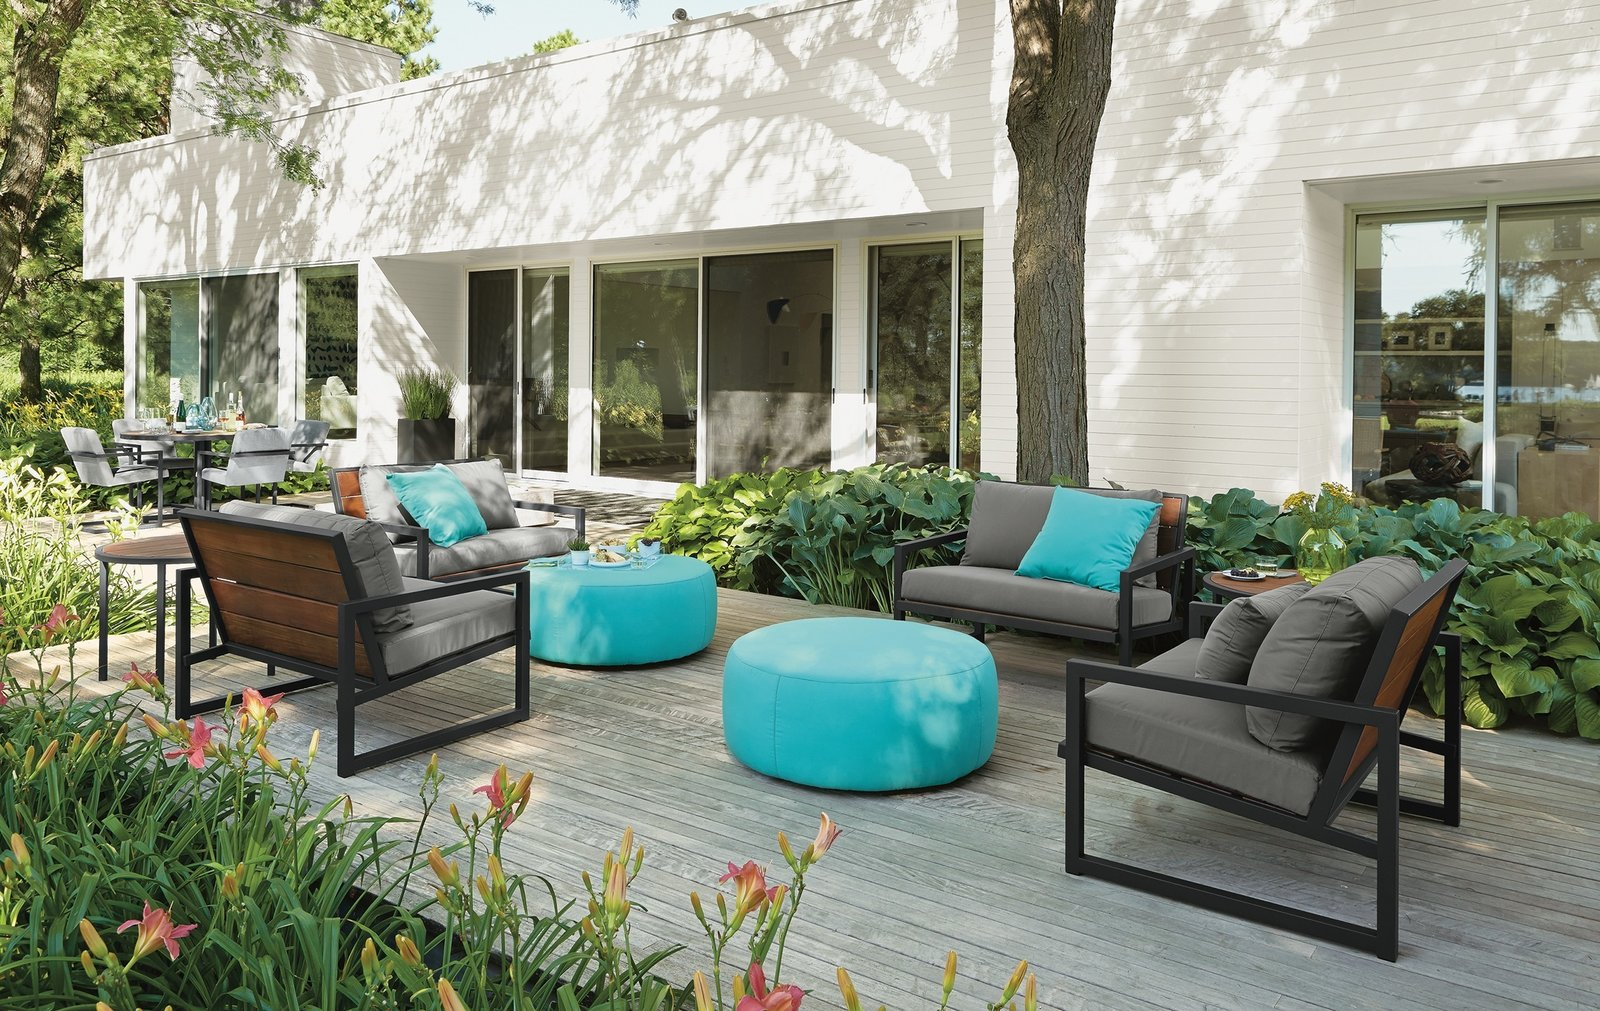 Montego sofa with cushions, Montego lounge chair with cushions, Boyd round ottoman, solid outdoor pillows Tagged: Outdoor, Back Yard, Large Patio, Porch, Deck, Wood Patio, Porch, Deck, Gardens, and Shrubs.  Photo 8 of 8 in Expert Design Advice: Outdoor Dining Spaces